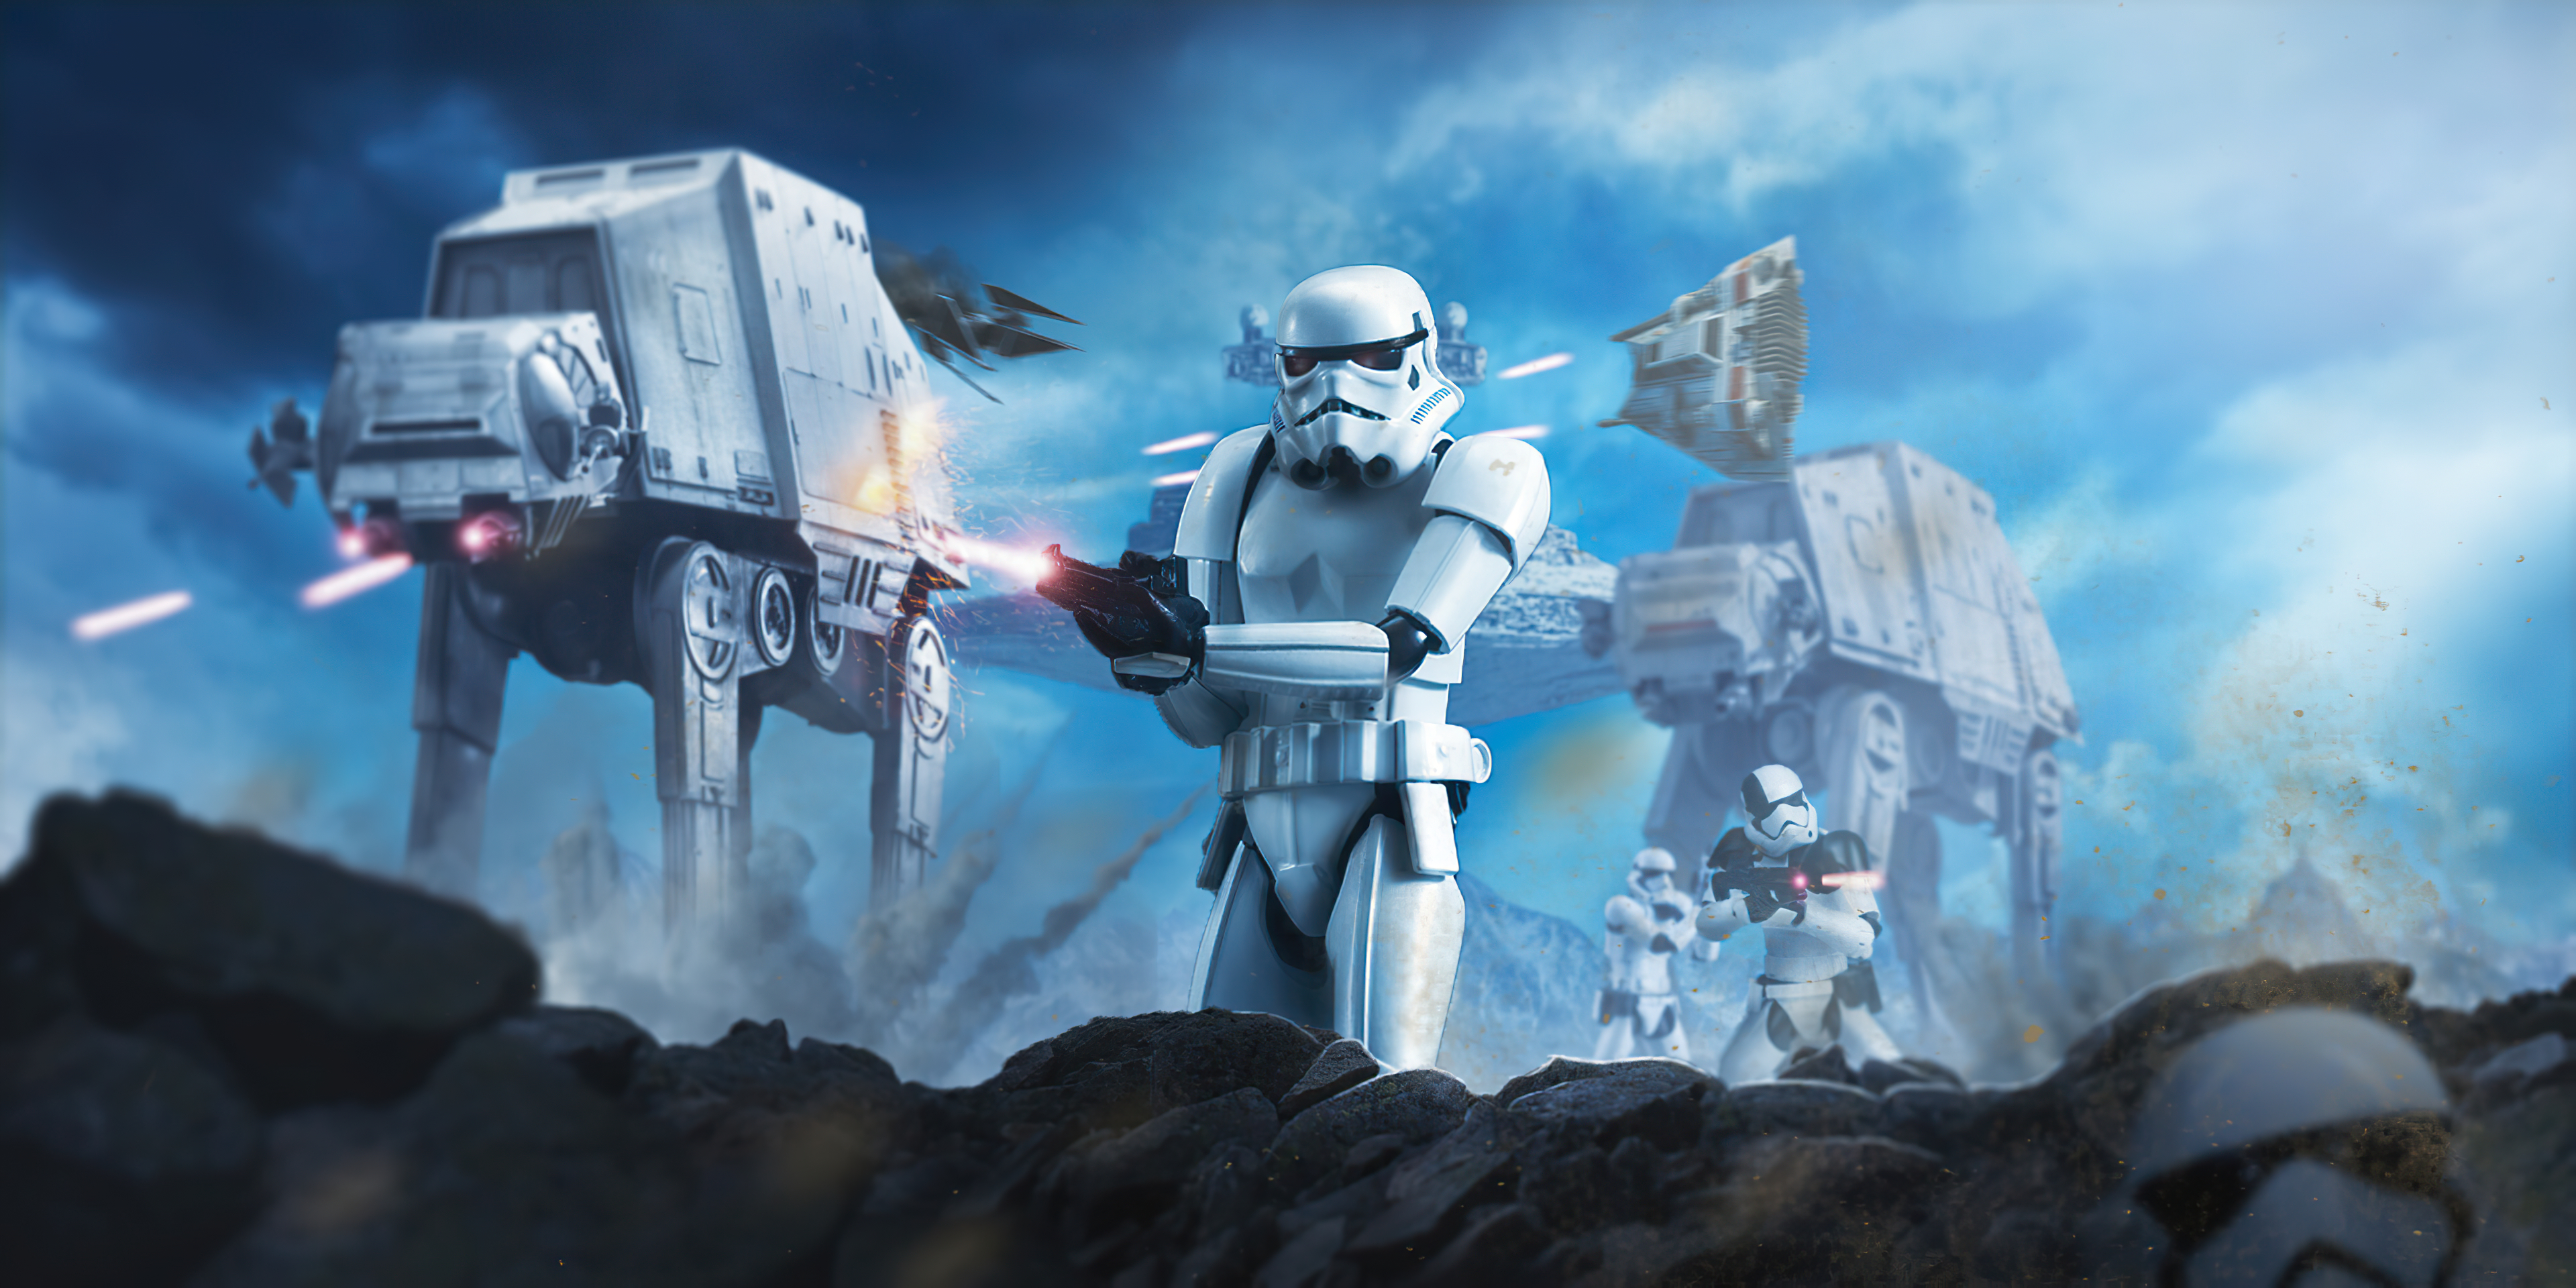 1400x900 Star Wars Battle Of Hoth 1400x900 Resolution Hd 4k Wallpapers Images Backgrounds Photos And Pictures